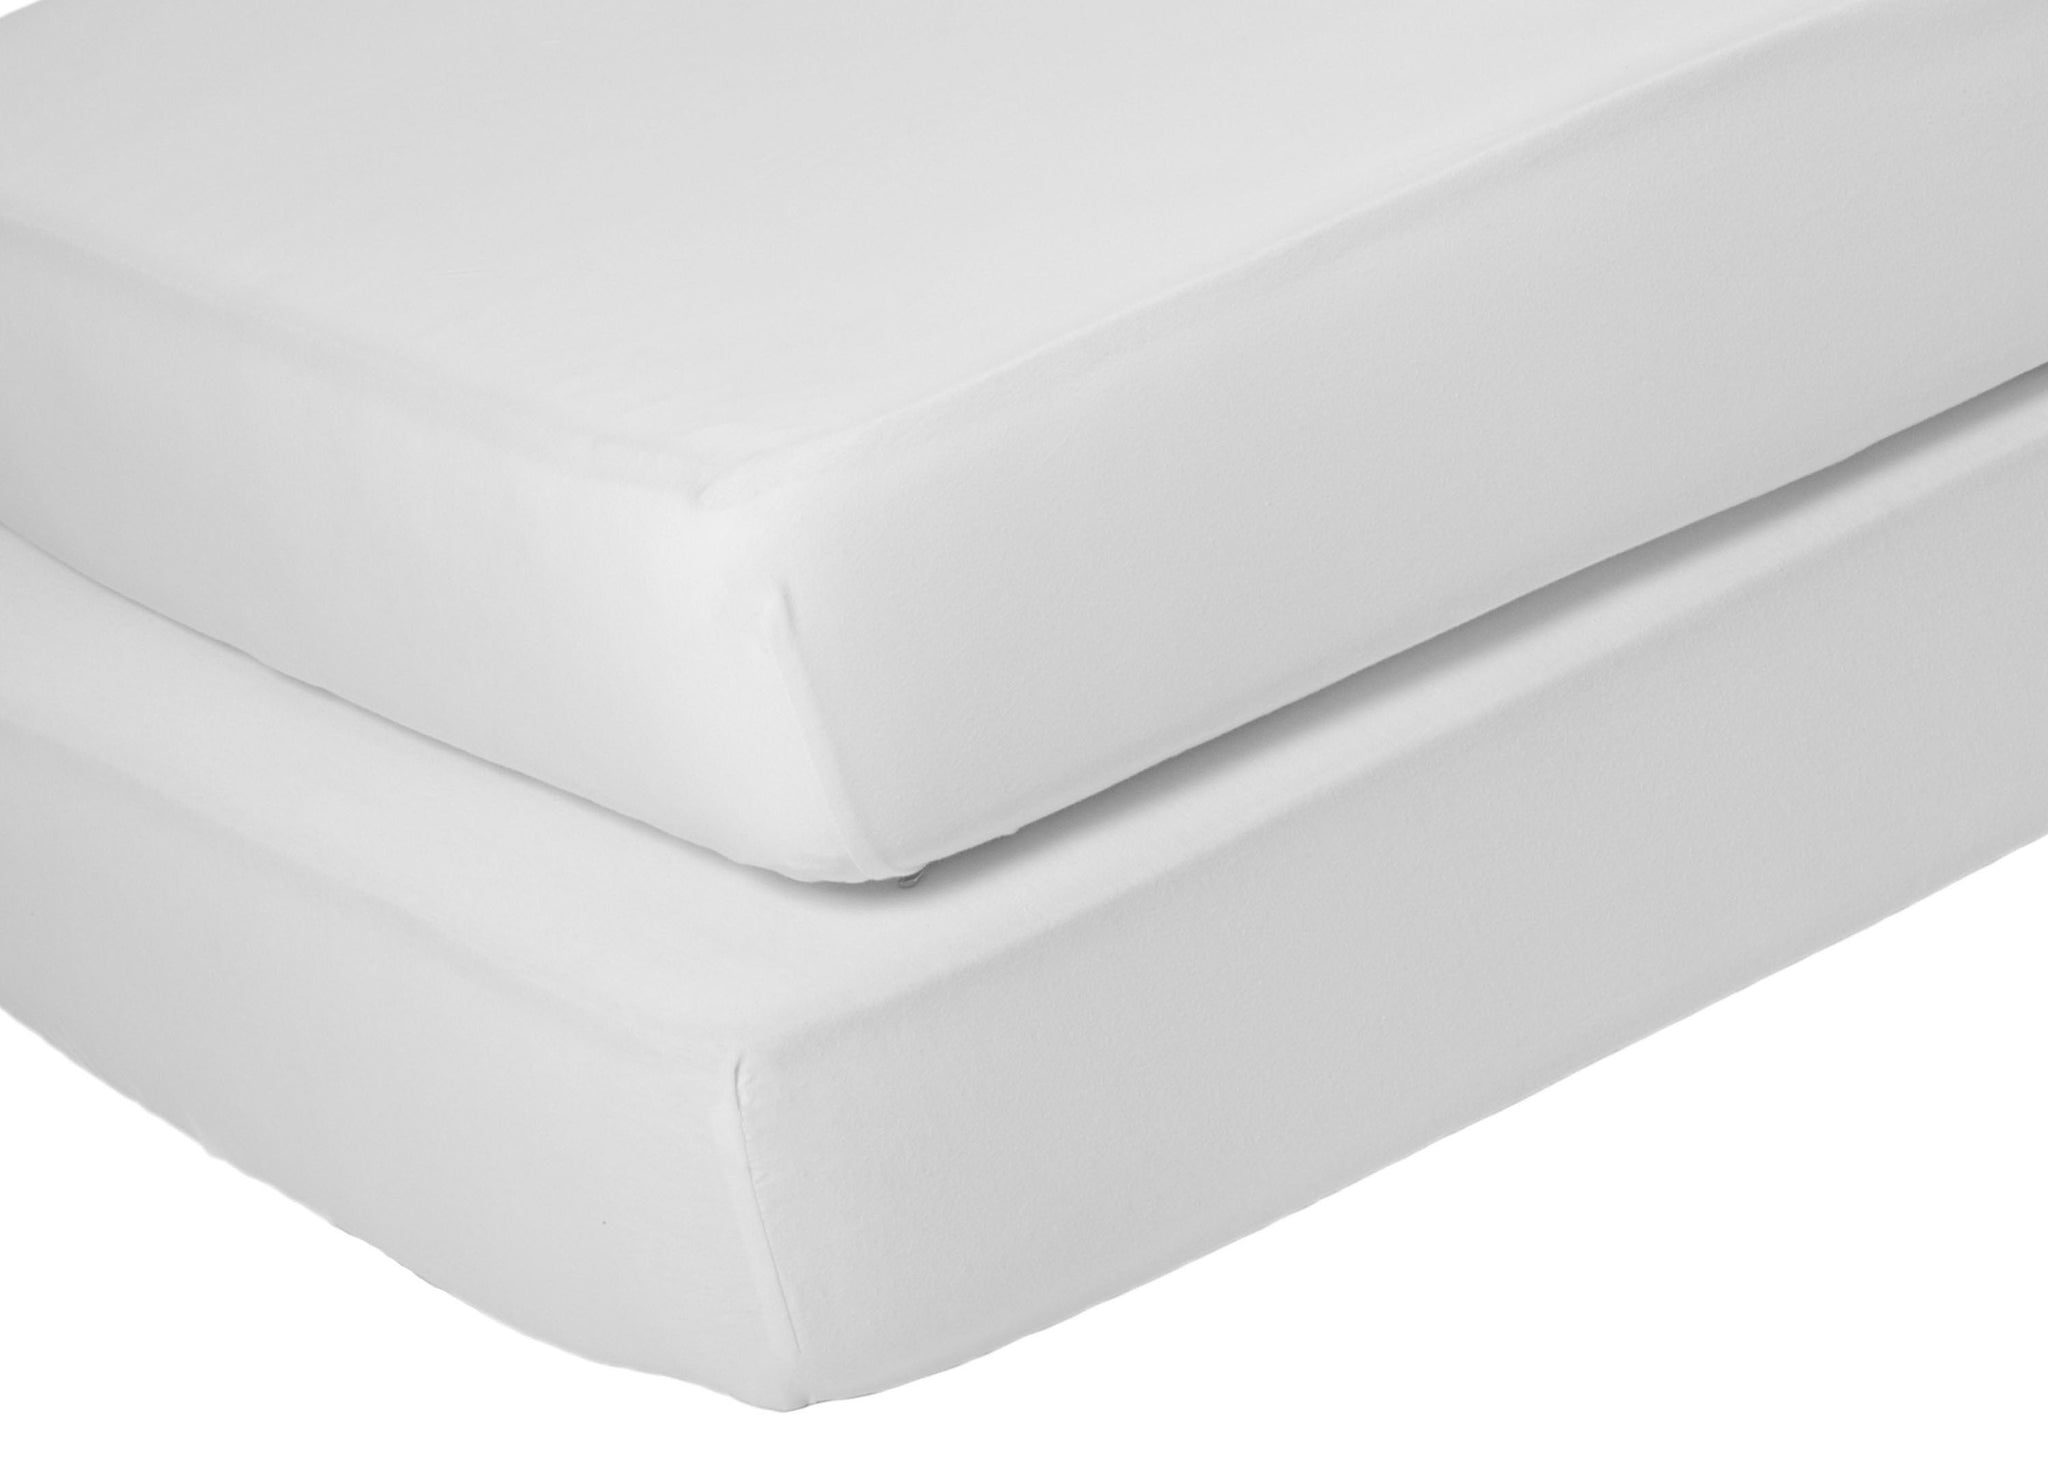 Delta Children White (100) Fitted Crib Sheet Set – 2 Pack Mattress Top Detail View